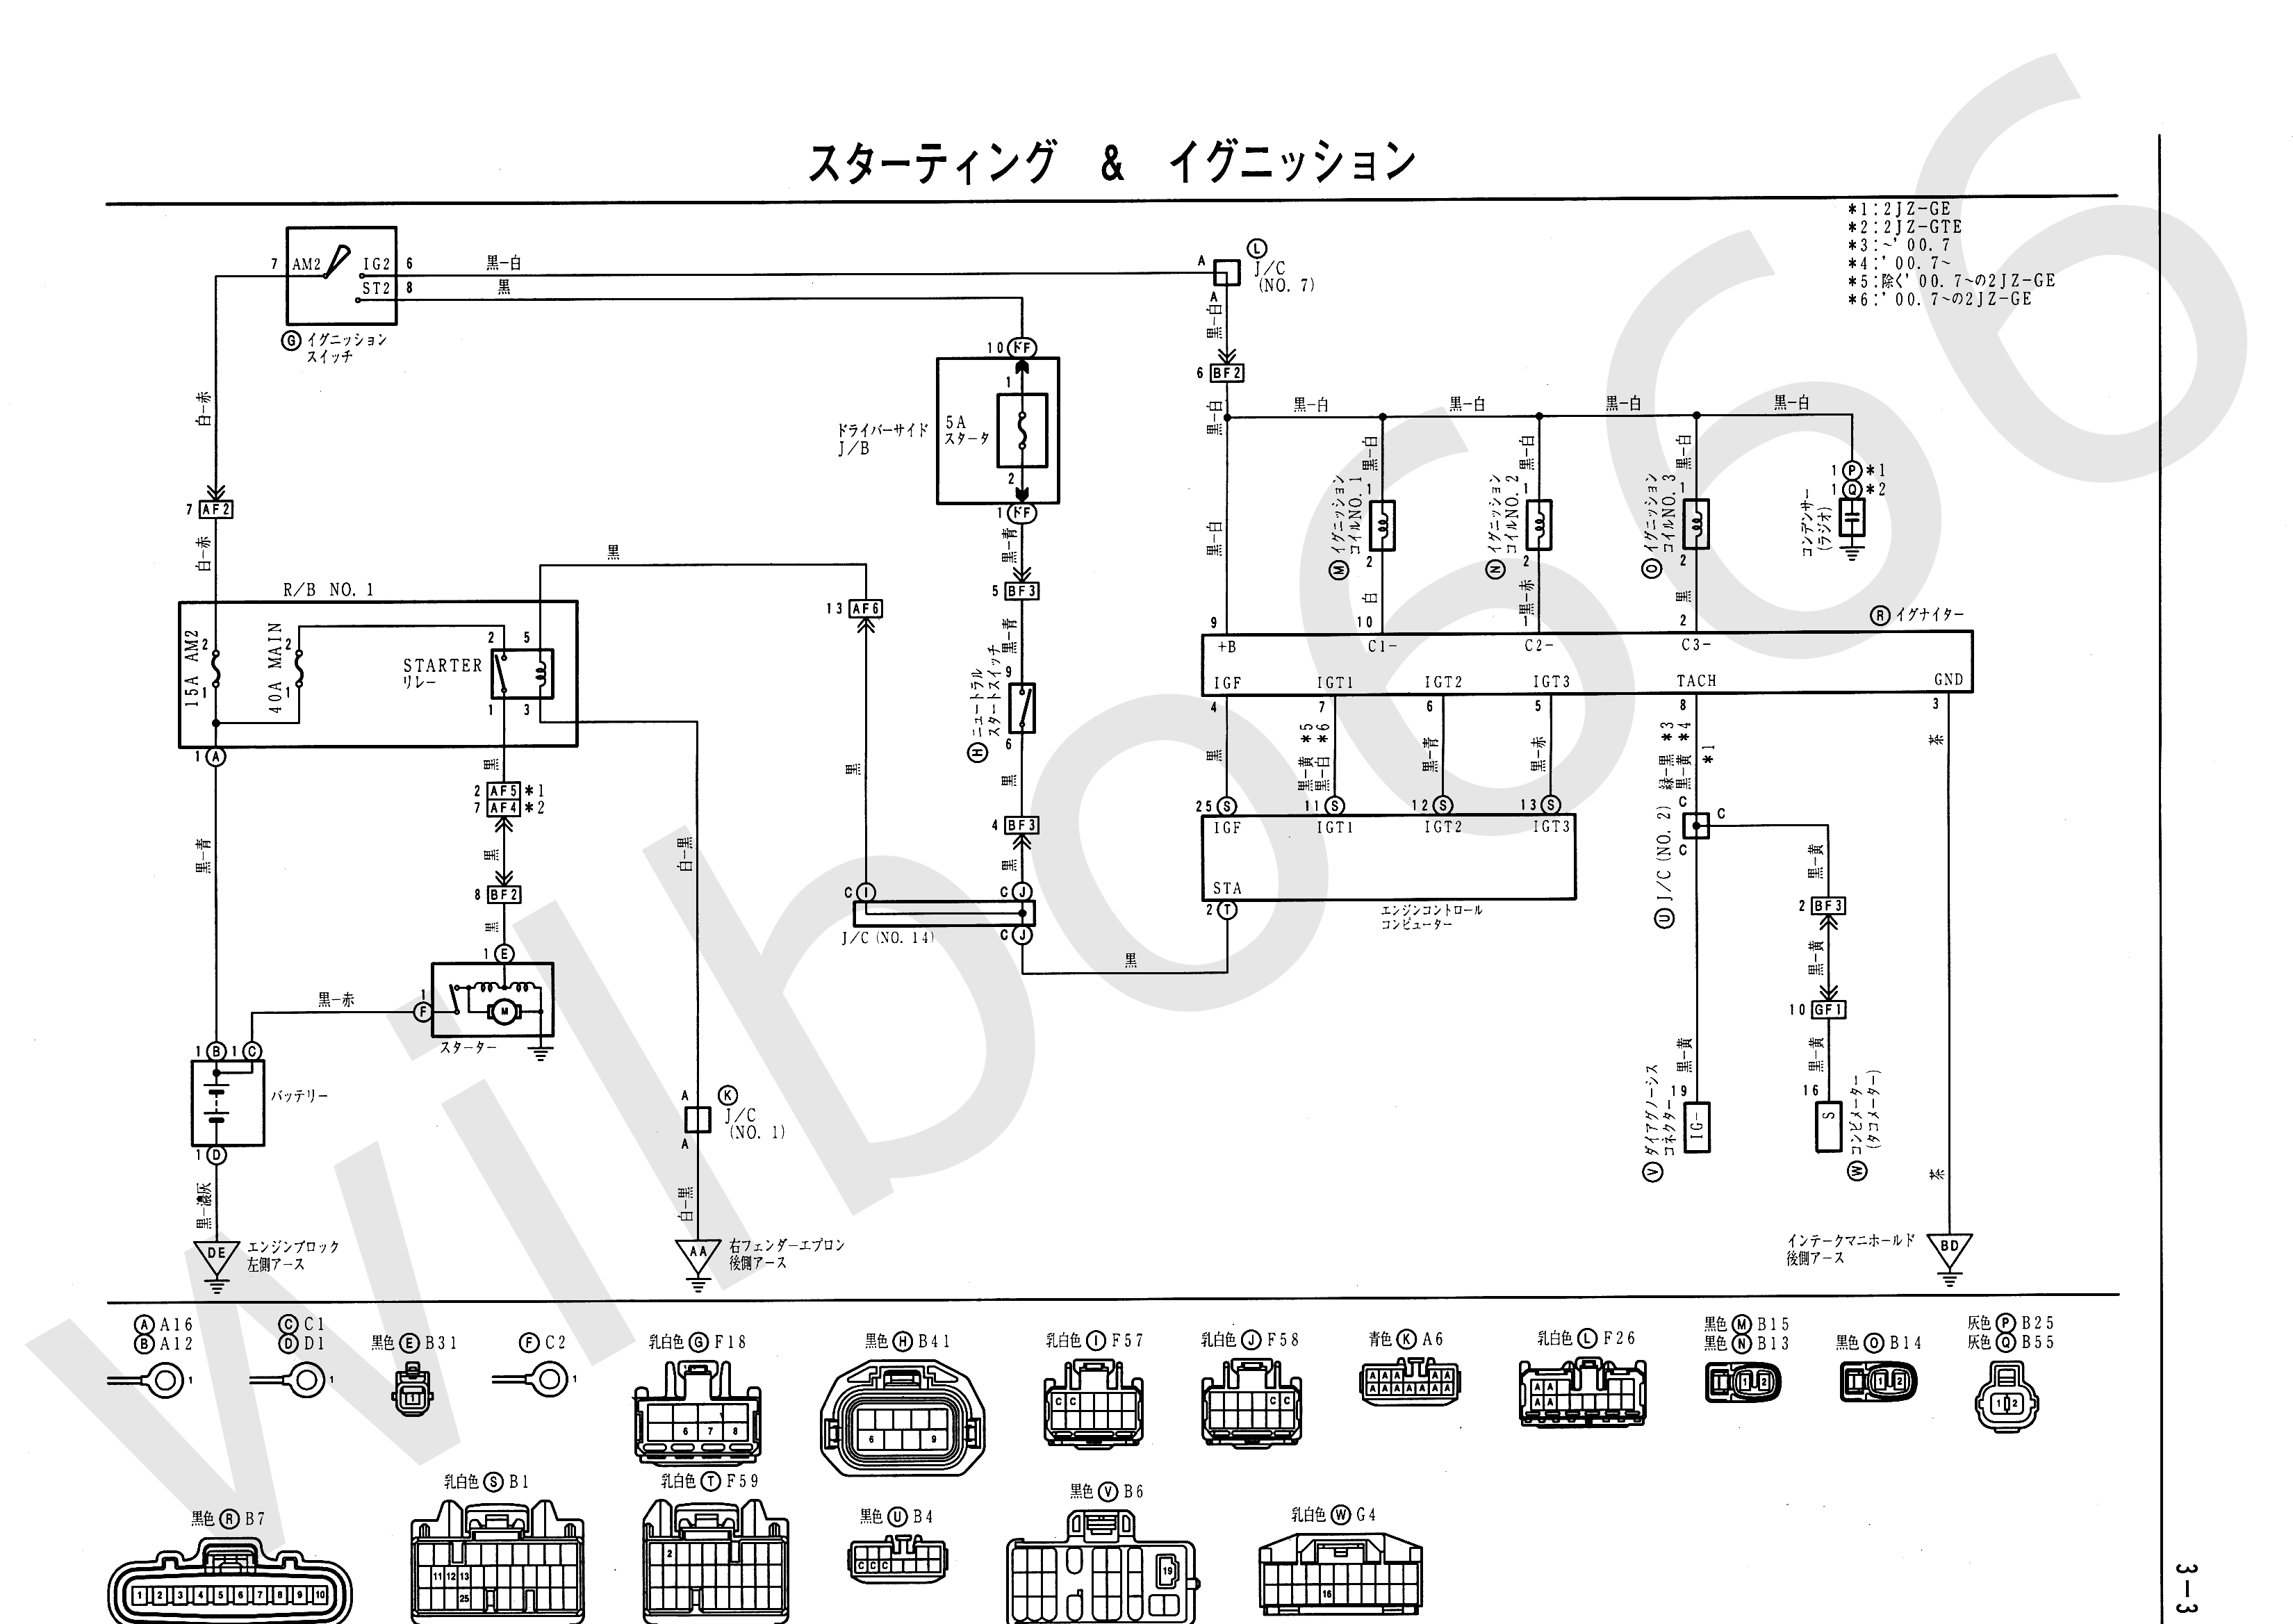 JZS161 Electrical Wiring Diagram 6748505 3 3 wilbo666 2jz gte vvti jzs161 aristo engine wiring 2jzgte wiring diagram at reclaimingppi.co